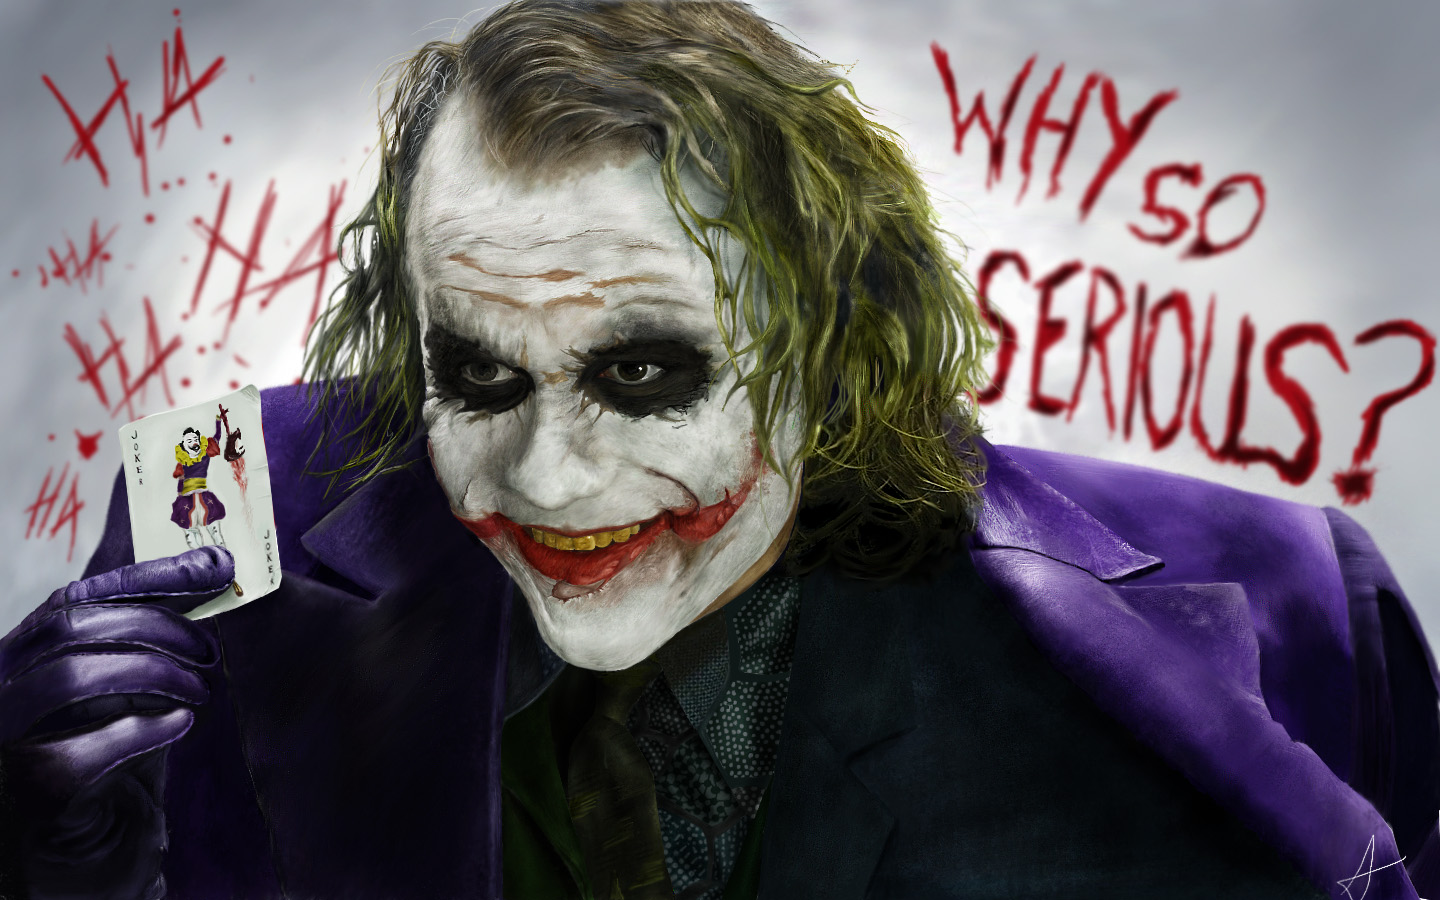 http://fc00.deviantart.net/fs70/f/2010/237/4/a/The_Joker_by_DookieAdz.jpg